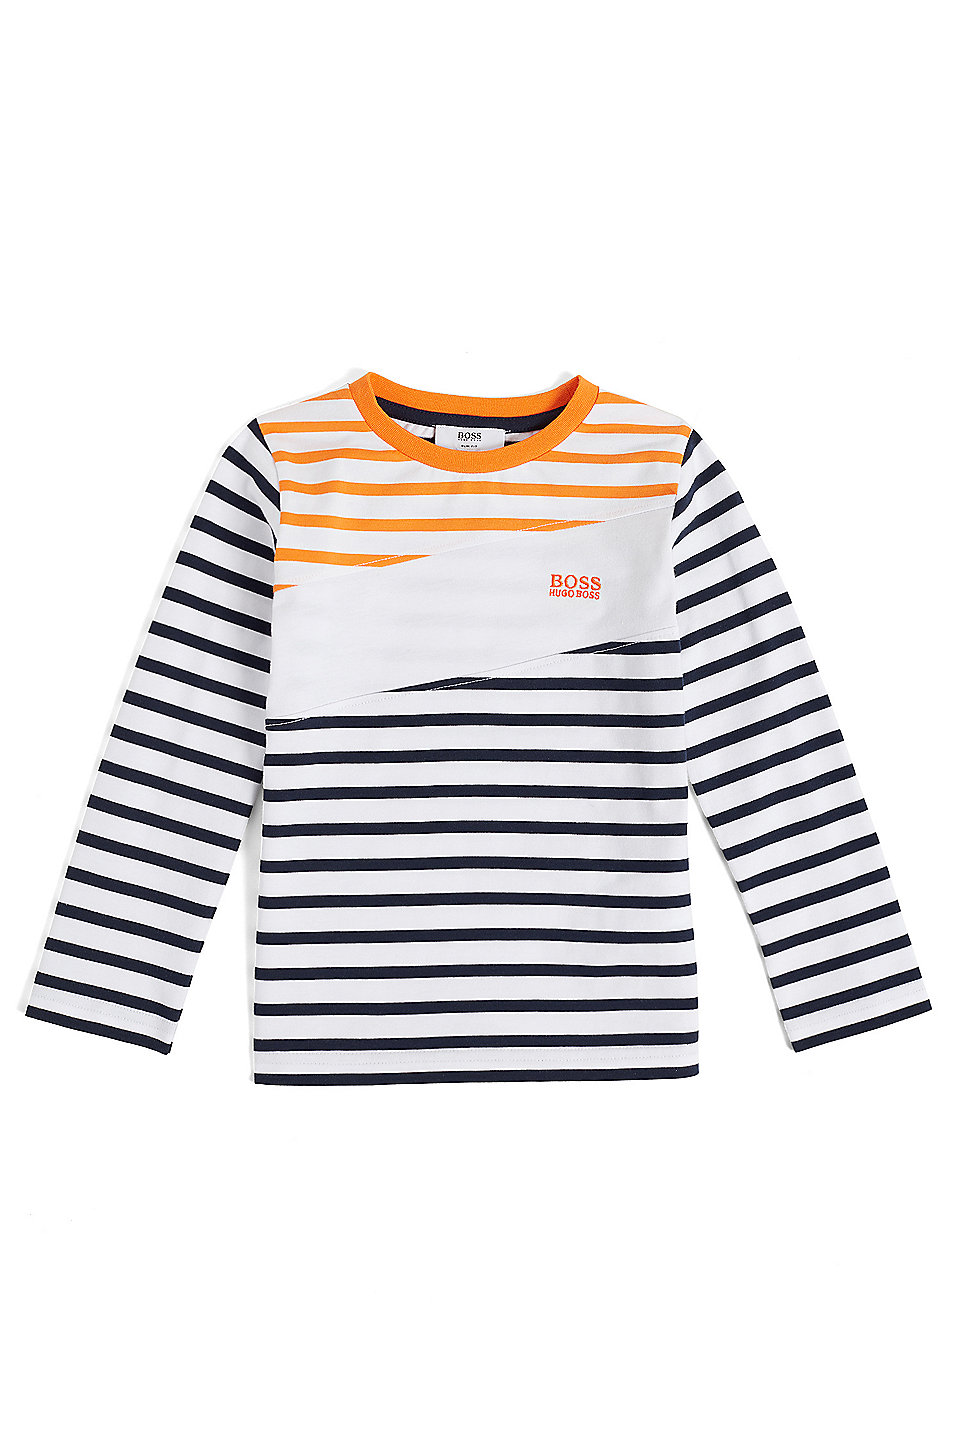 99c067ed4 BOSS - Kids' long-sleeved T-shirt with stripes and asymmetric block